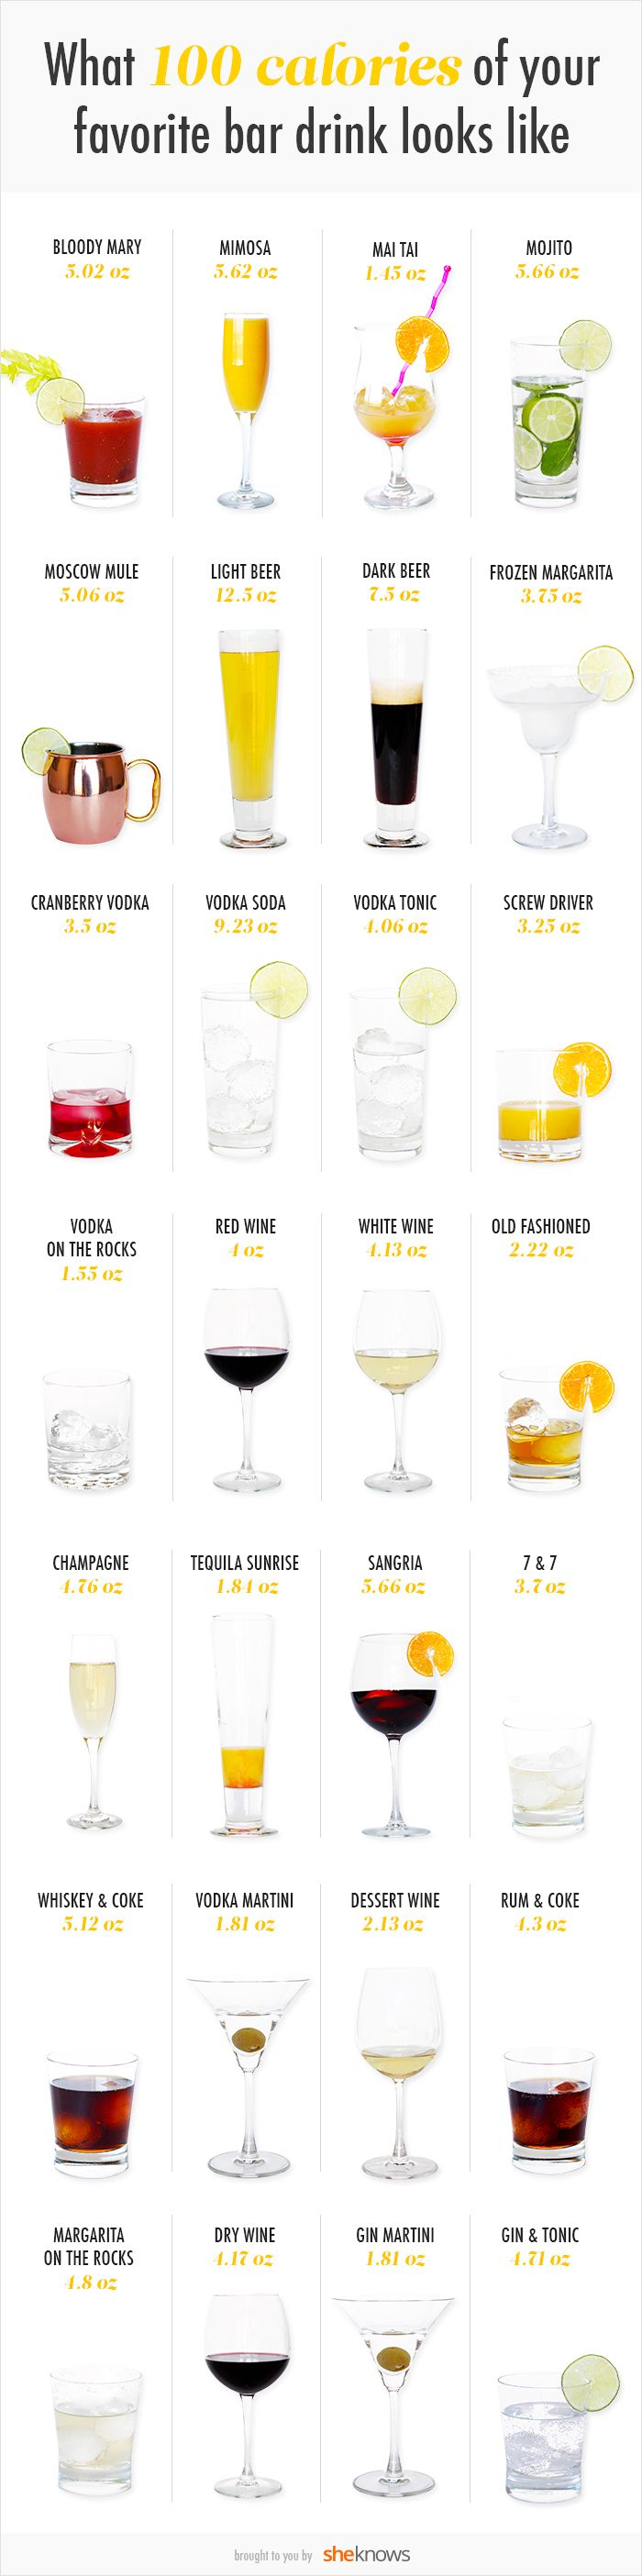 What 100 calories of your favorite drink looks like -- super informative!